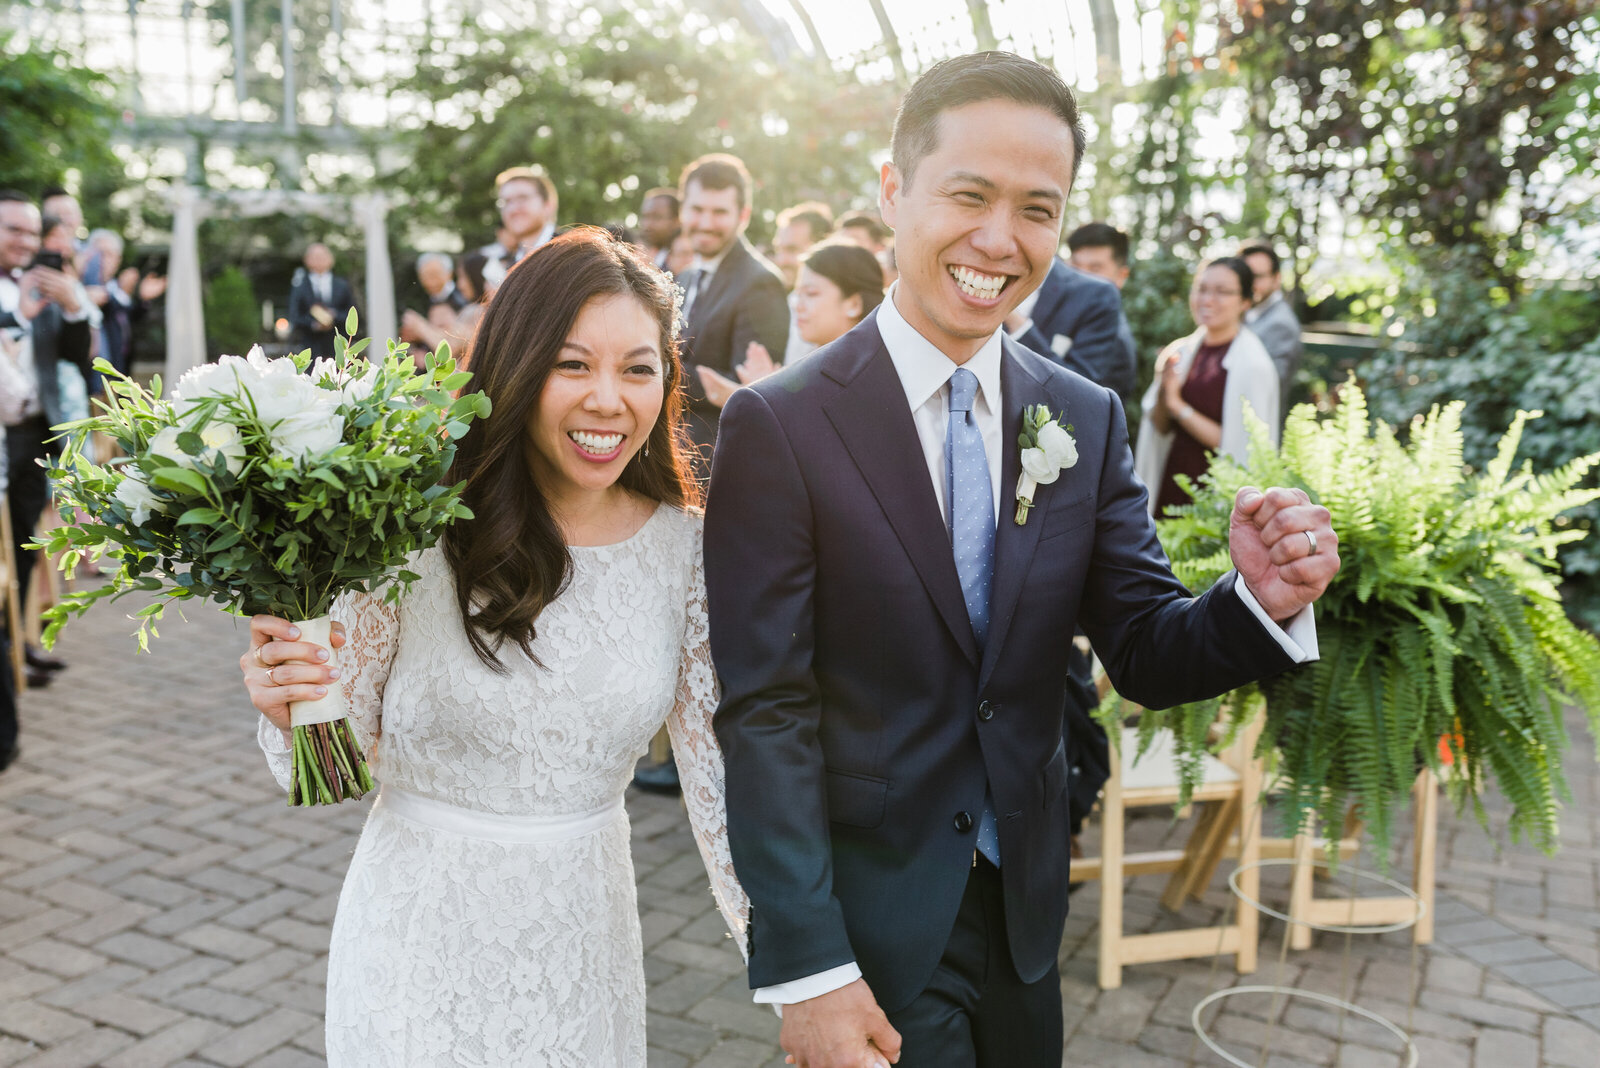 Garfield Park Conservatory Wedding _ Susie and Joe_379